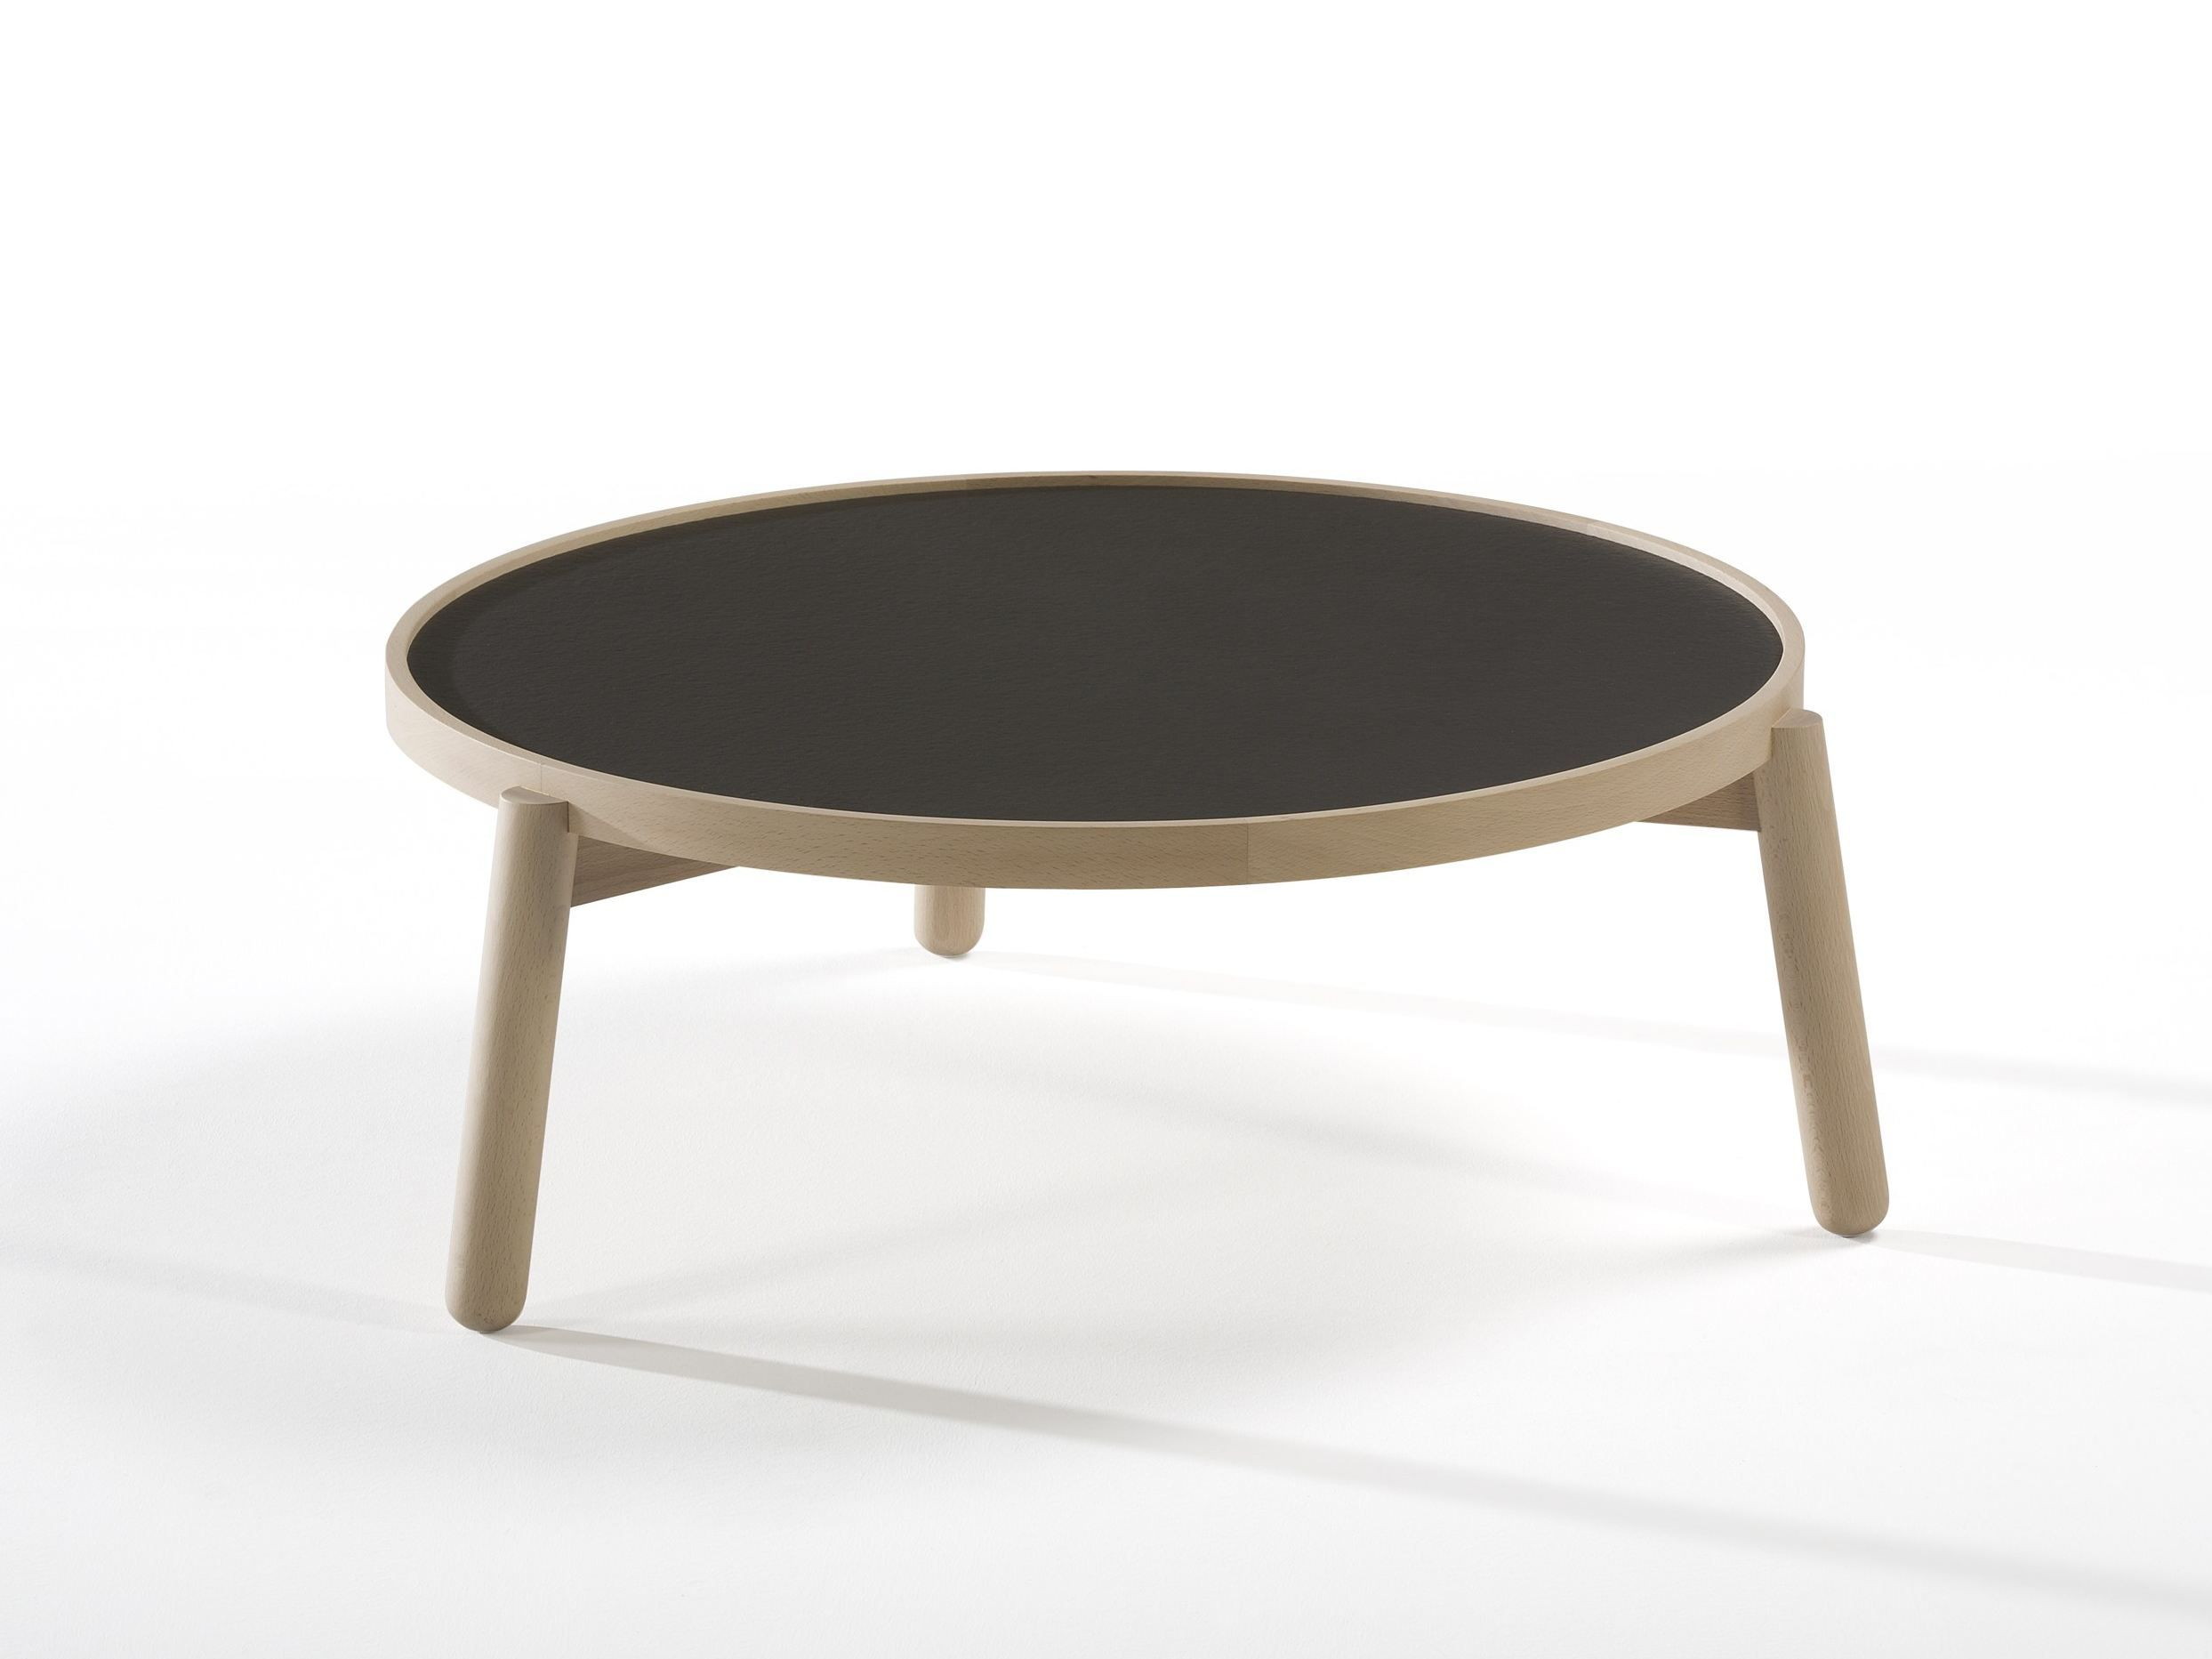 Low round coffee table VAN by Kendo Mobiliario